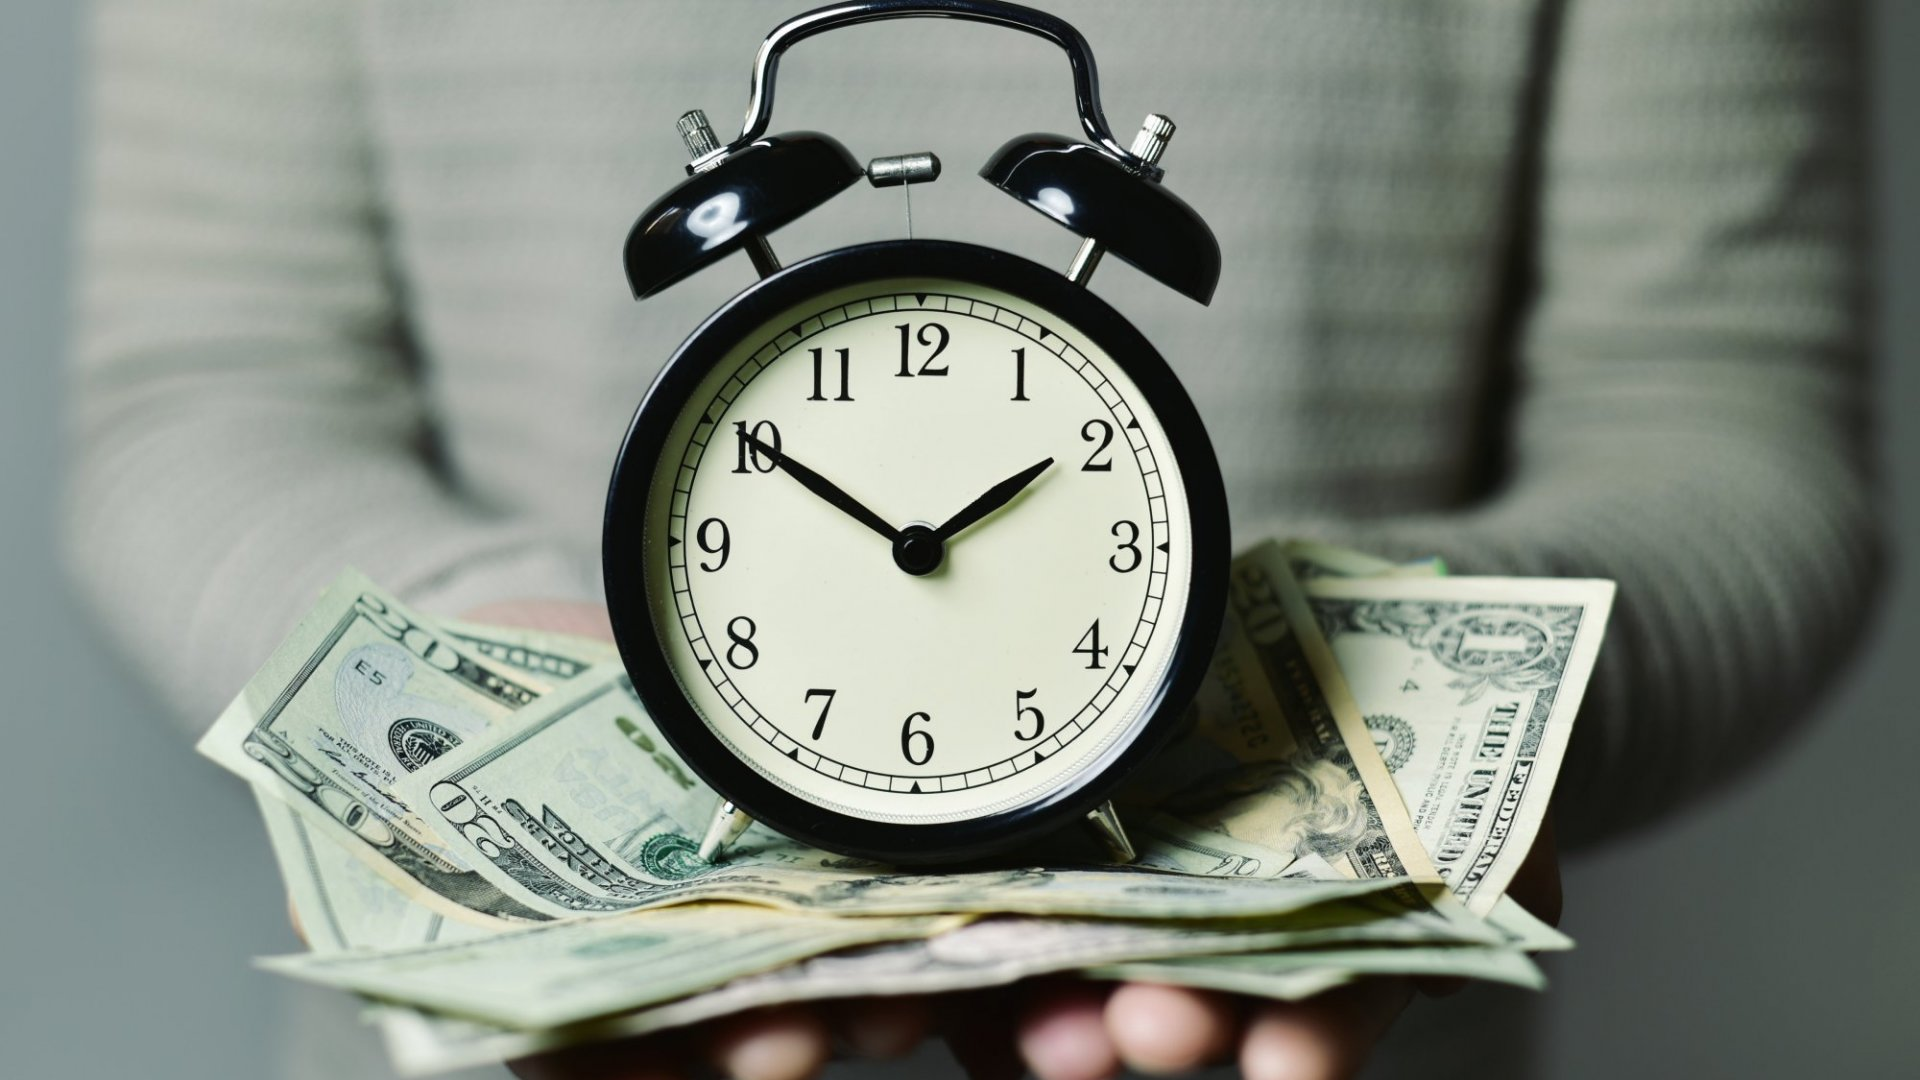 Why You Should Be More Worried About Your 'Return on Time' Instead of Investment